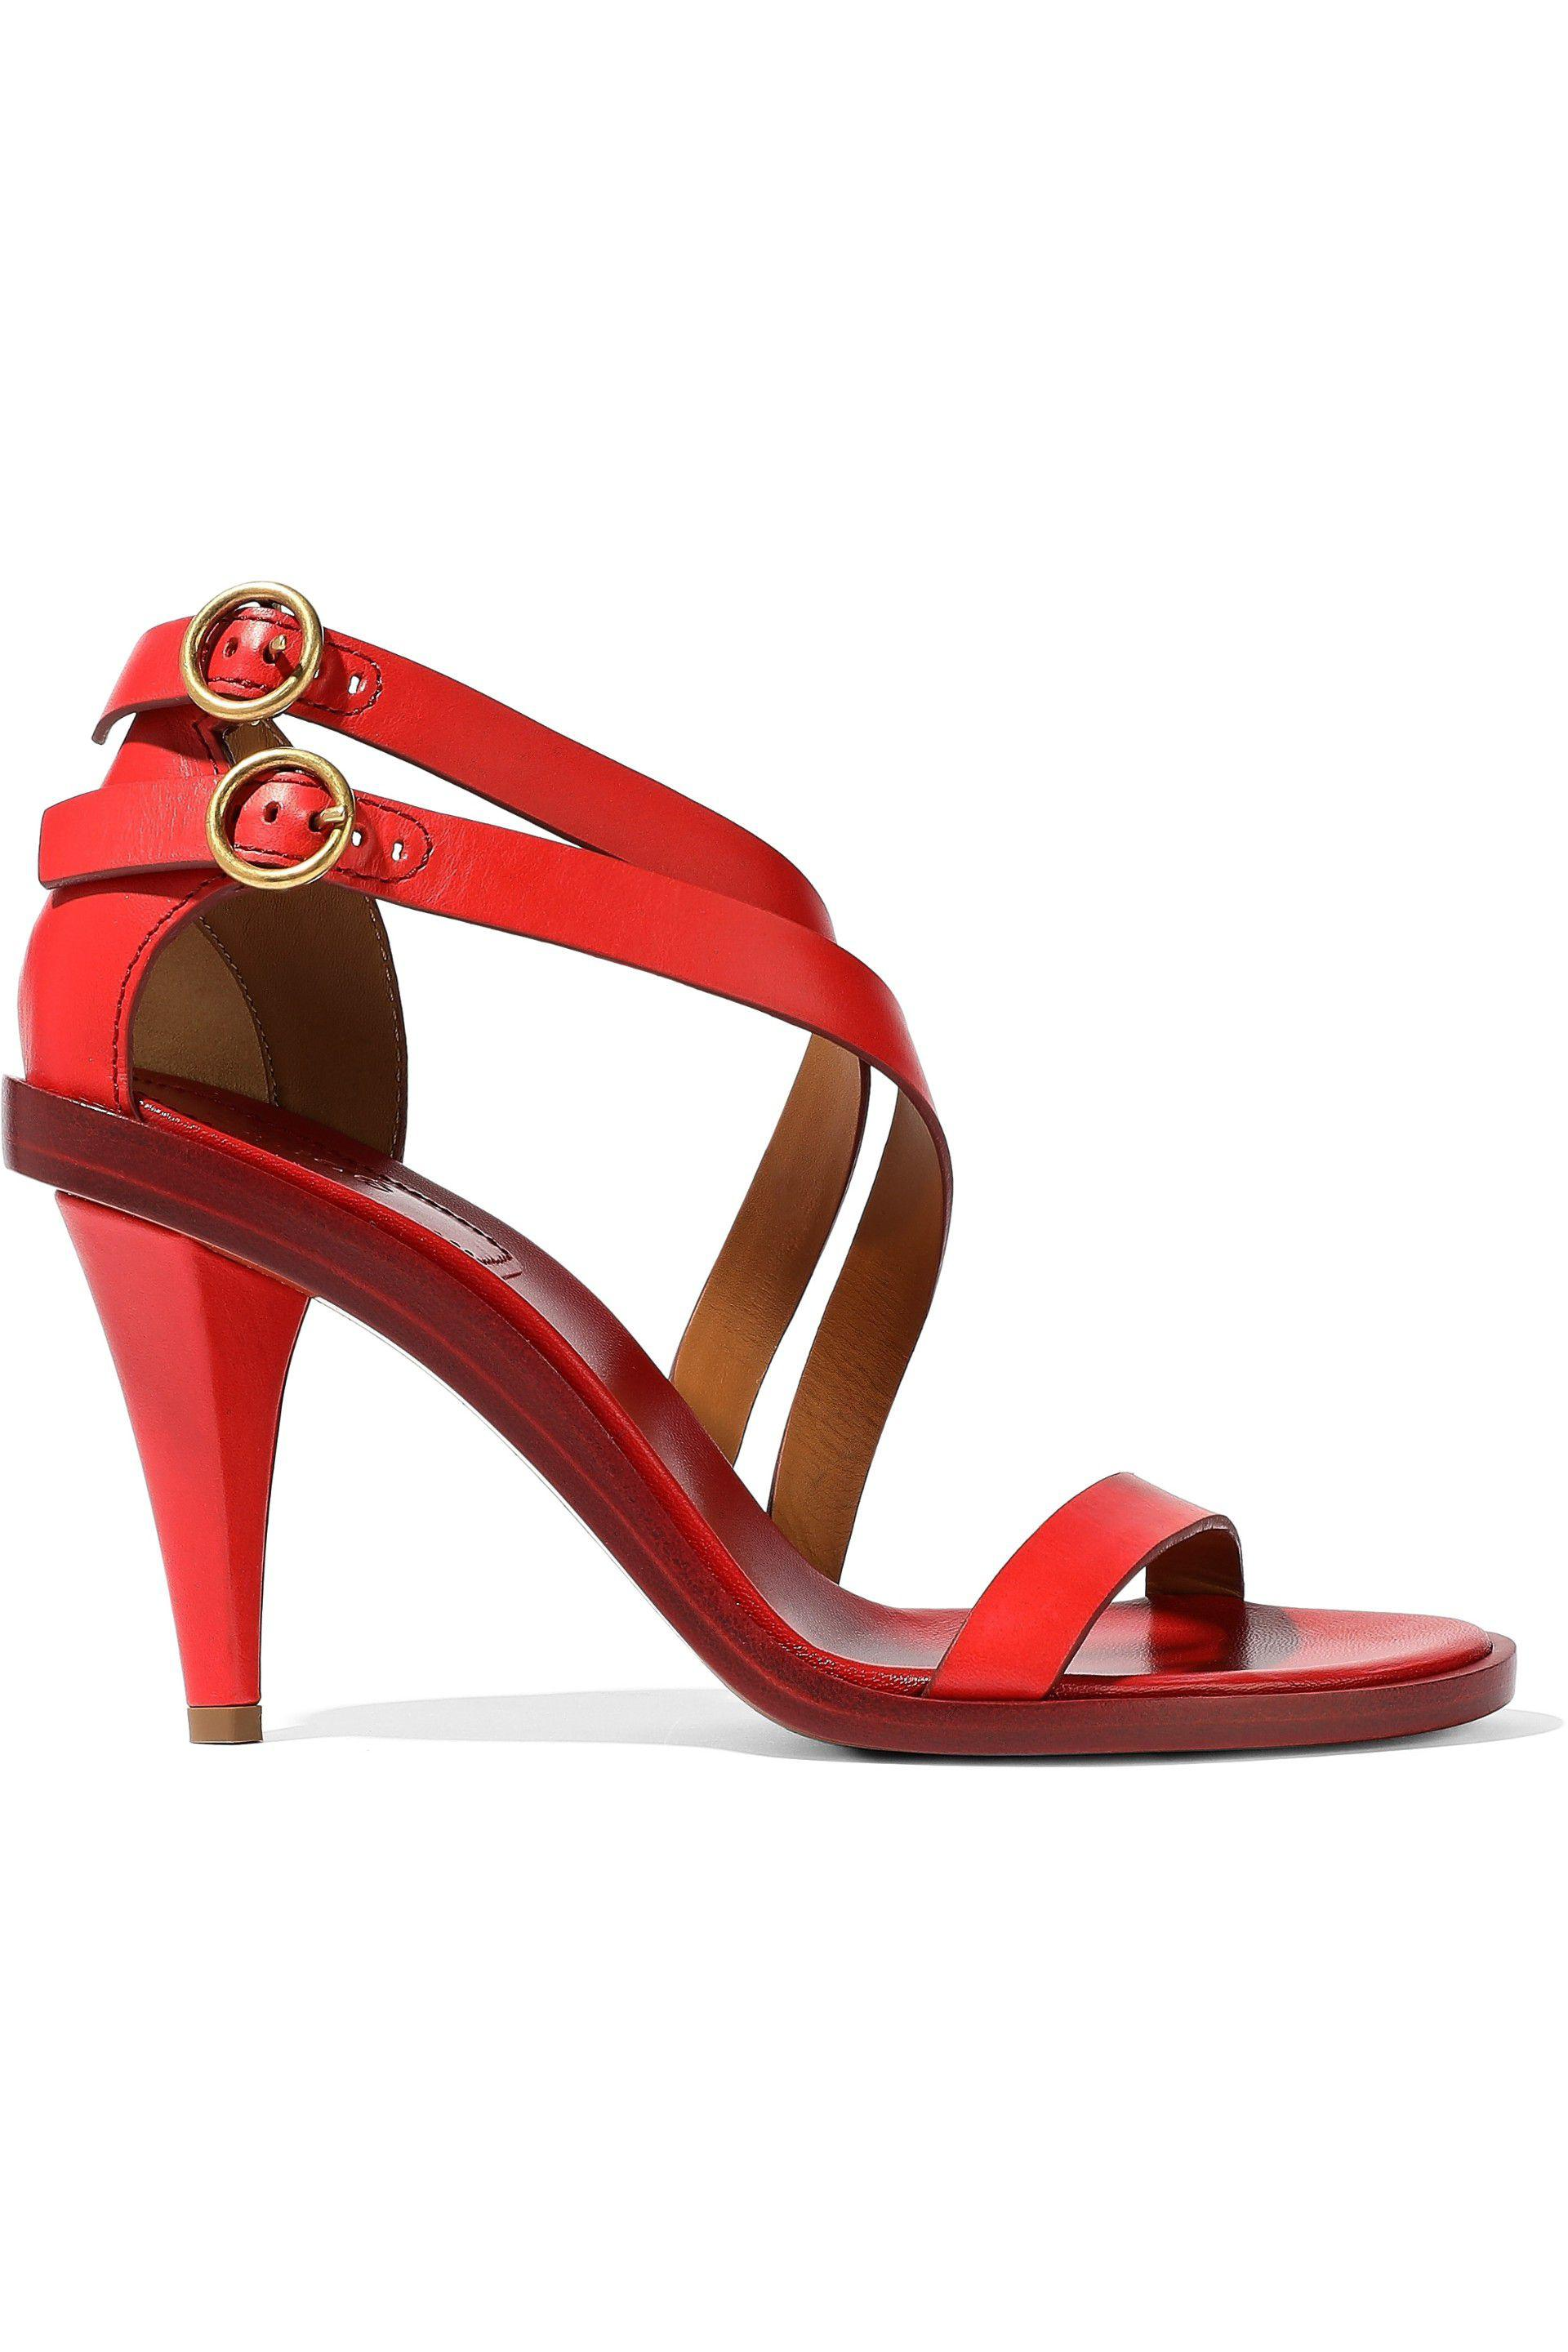 Chlo 233 Niko Sandals In Red Lyst